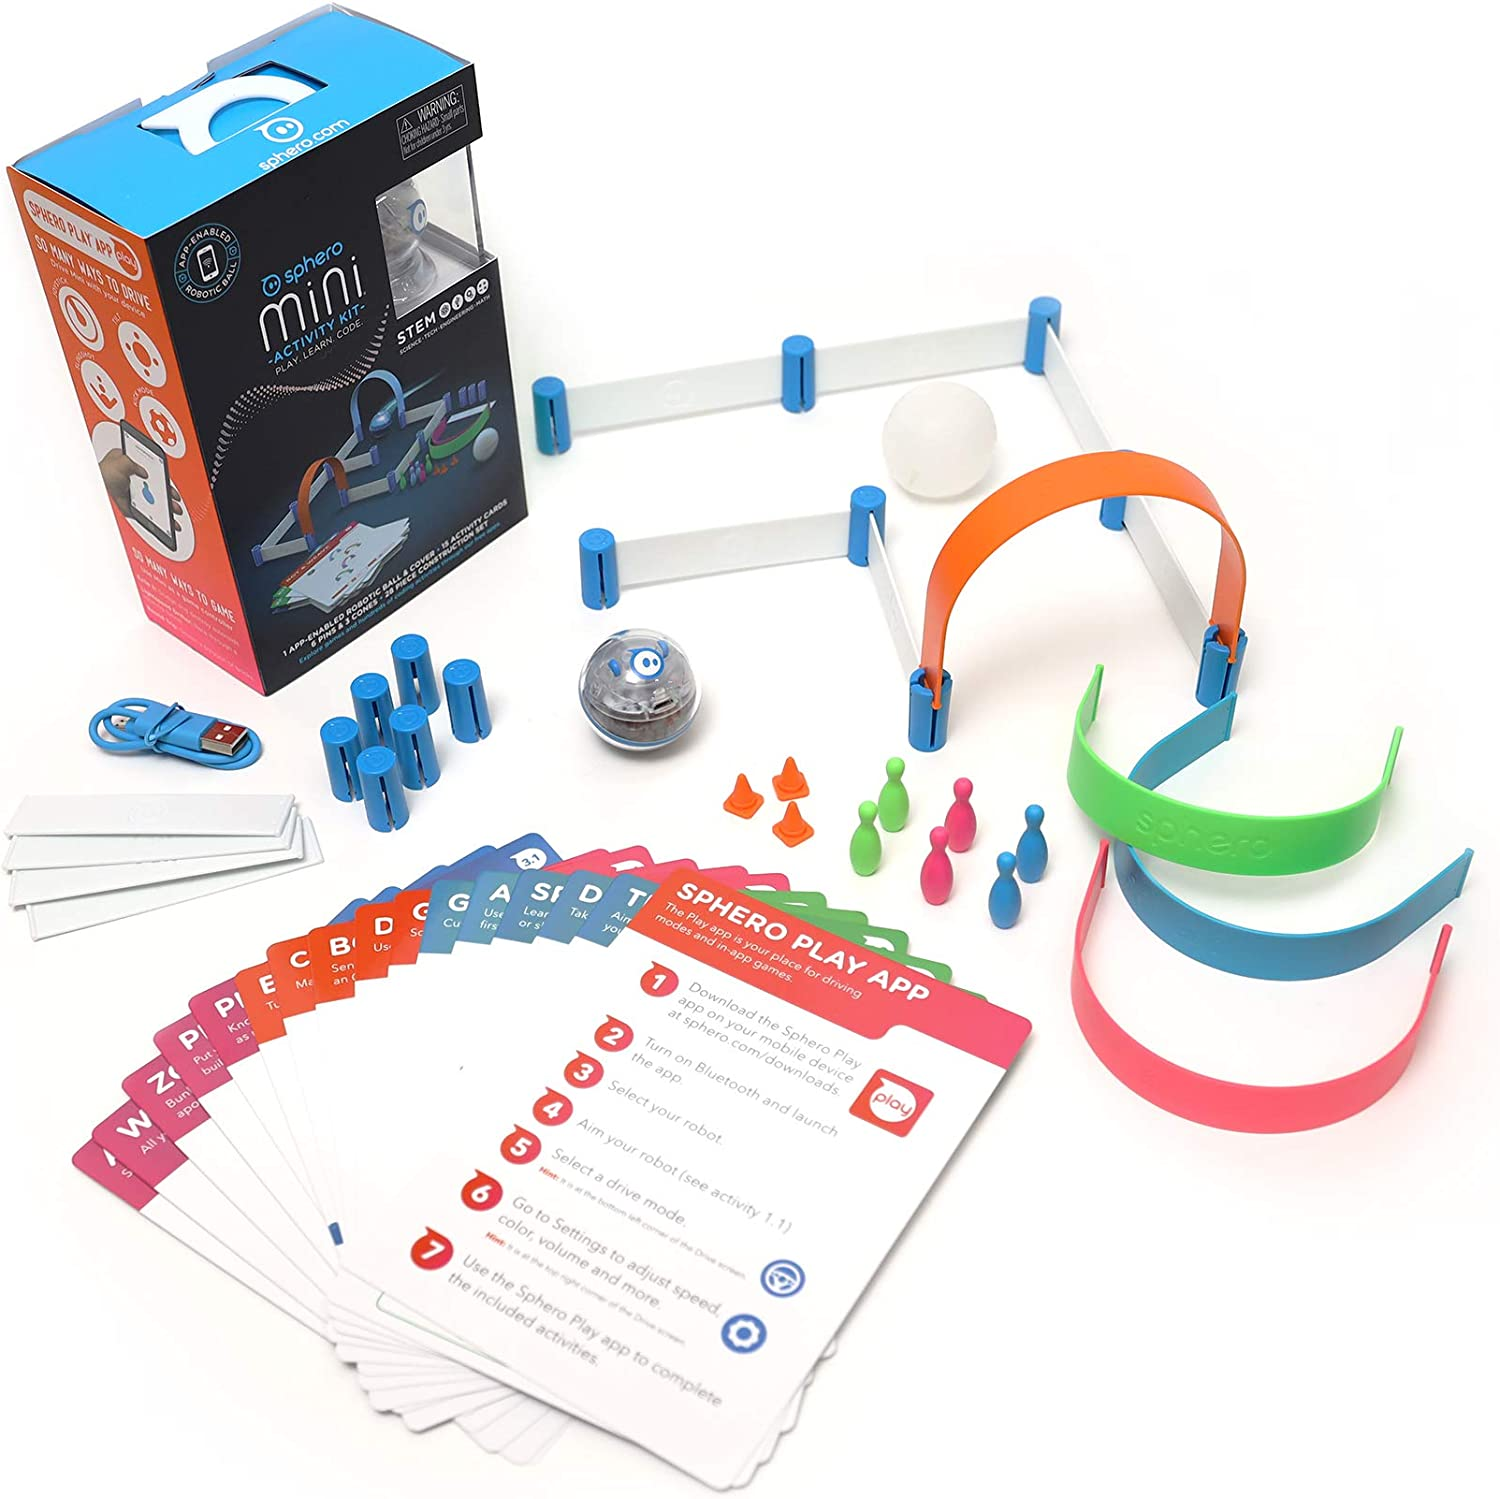 Sphero Mini Activity [Alternative dealer] We OFFer at cheap prices Kit: App-Enabled Programmable Ball Robot wi